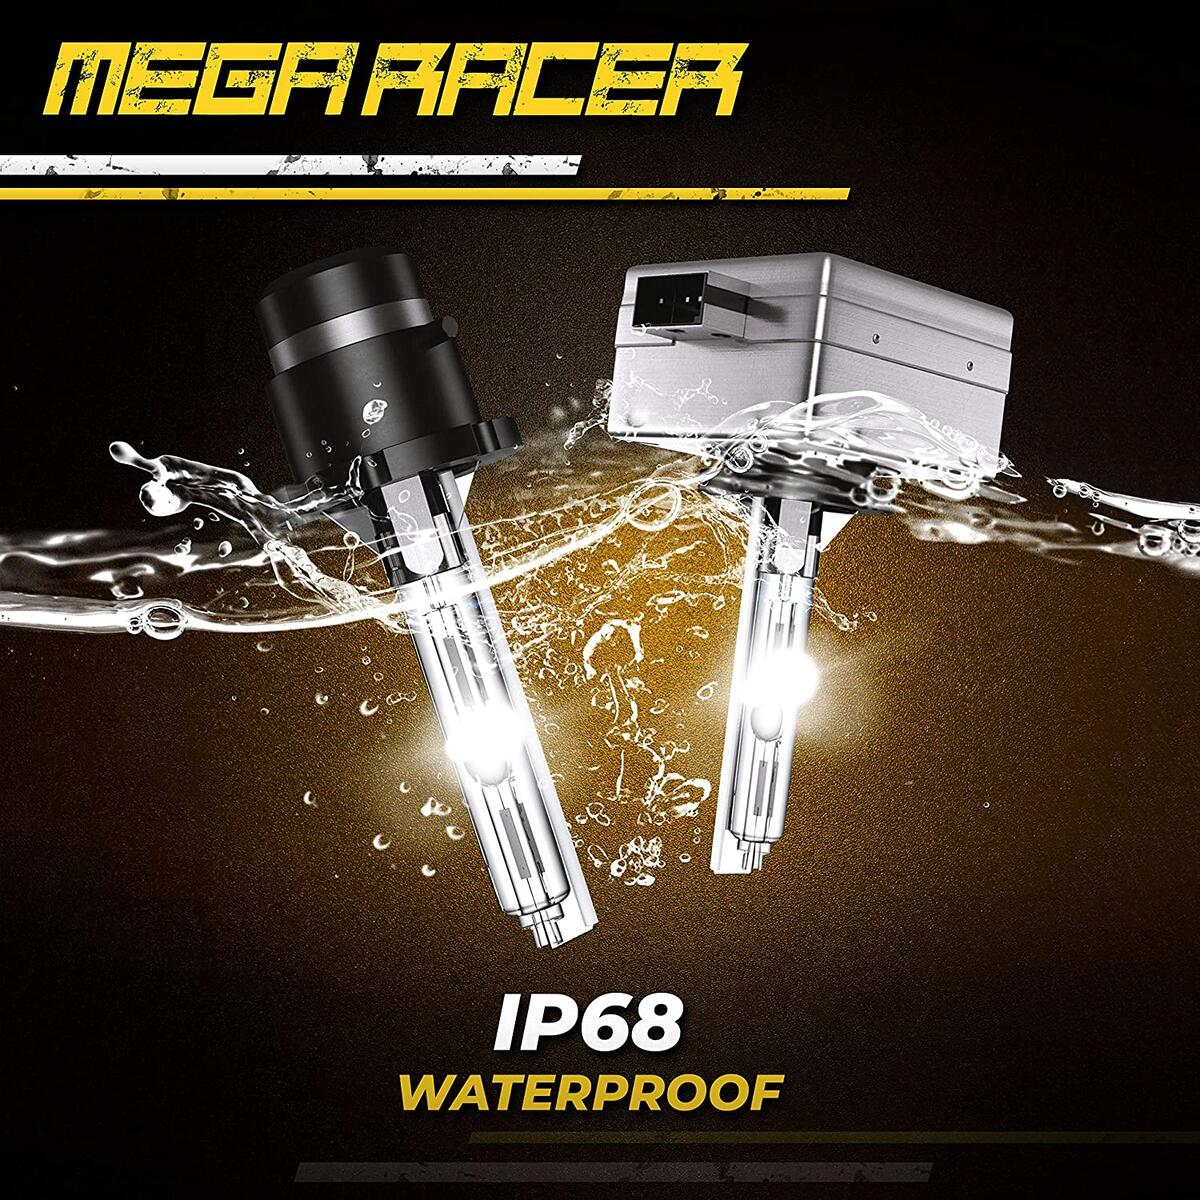 Mega Racer D3C/D3R/D3S HID Bulb Headlights for Low Beam High Beam 35W 6000K Diamond White 8000 Lumens Xenon Headlights IP68 Waterproof, Pack of 2